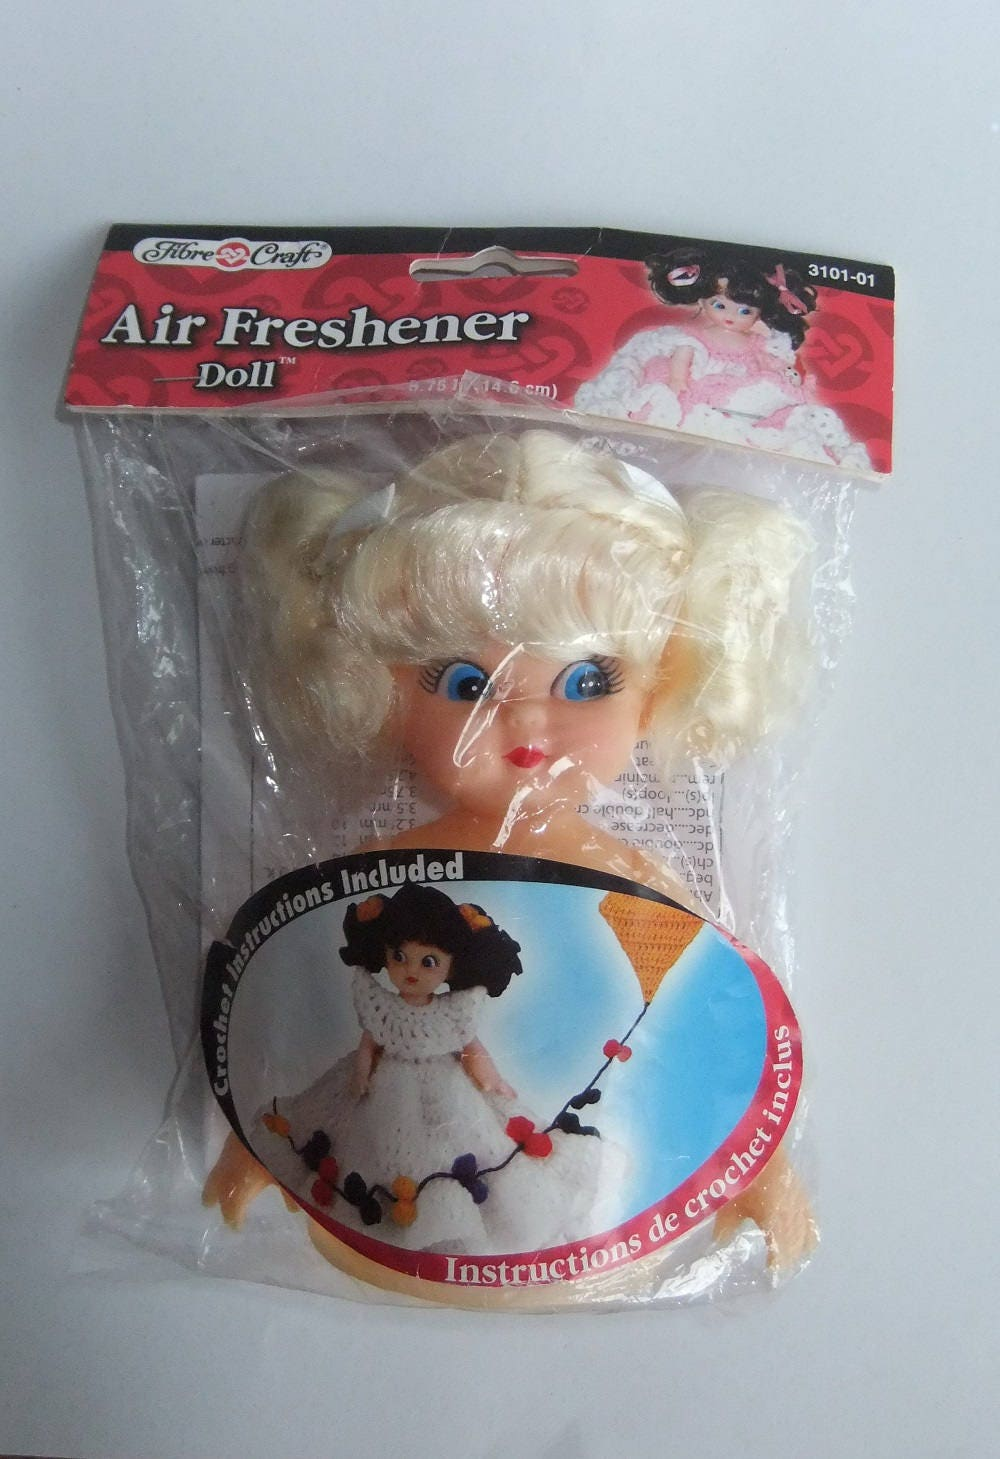 Fibre craft air freshener dolls - Sold By Michiegoodsny